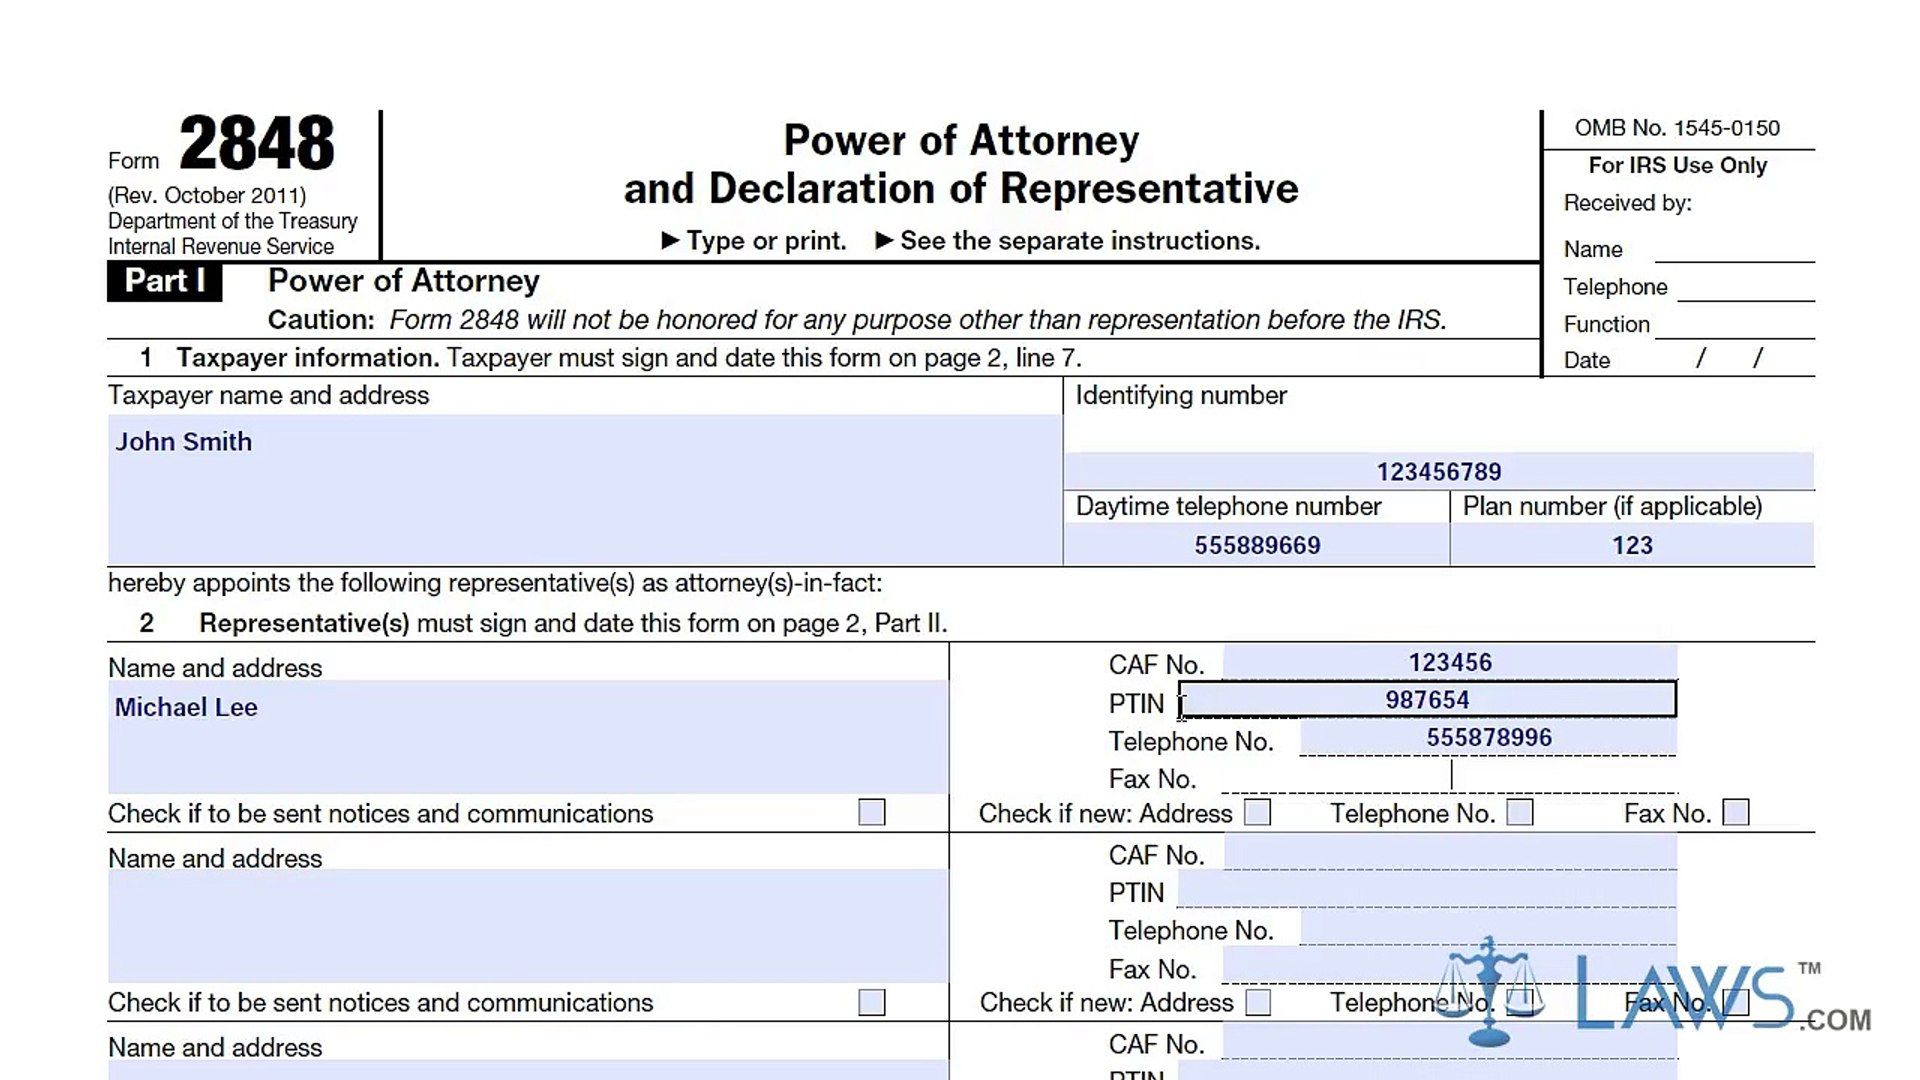 power of attorney form 2848  Learn How to Fill the Form 14 Power of Attorney and Declaration of  Representative